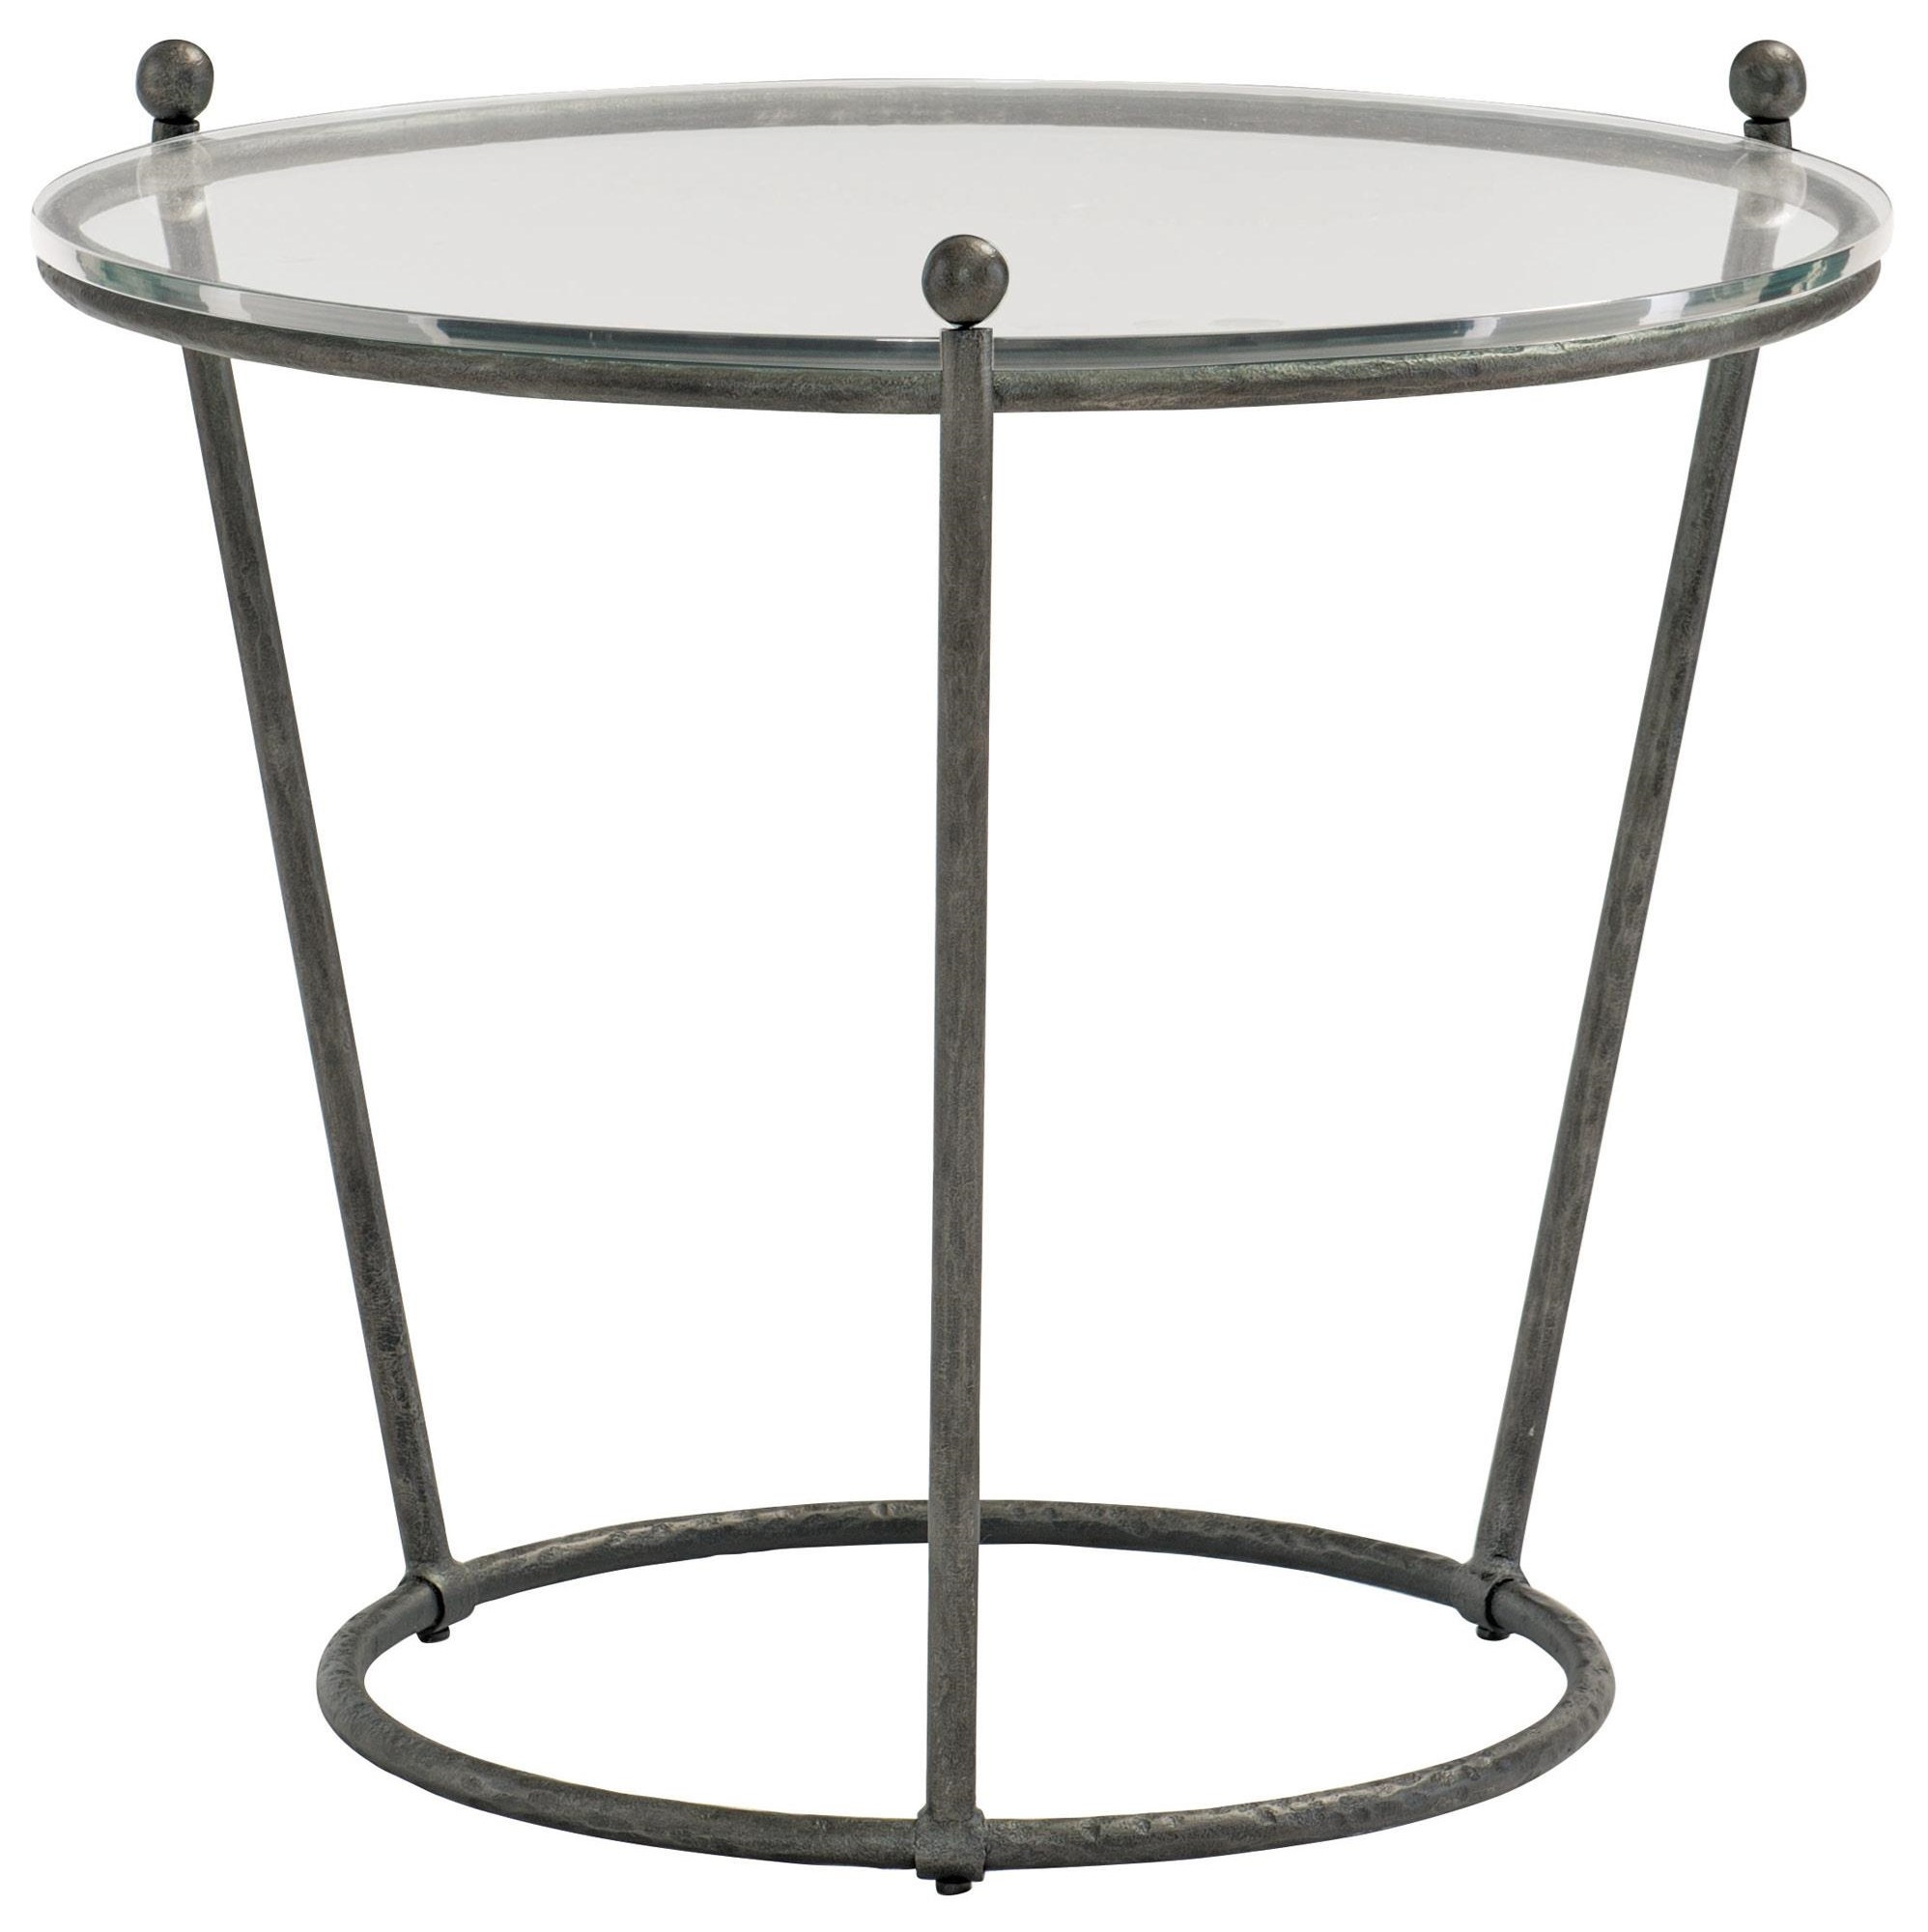 Cortland Round Glass and Metal End Table by Bernhardt at Dunk & Bright Furniture